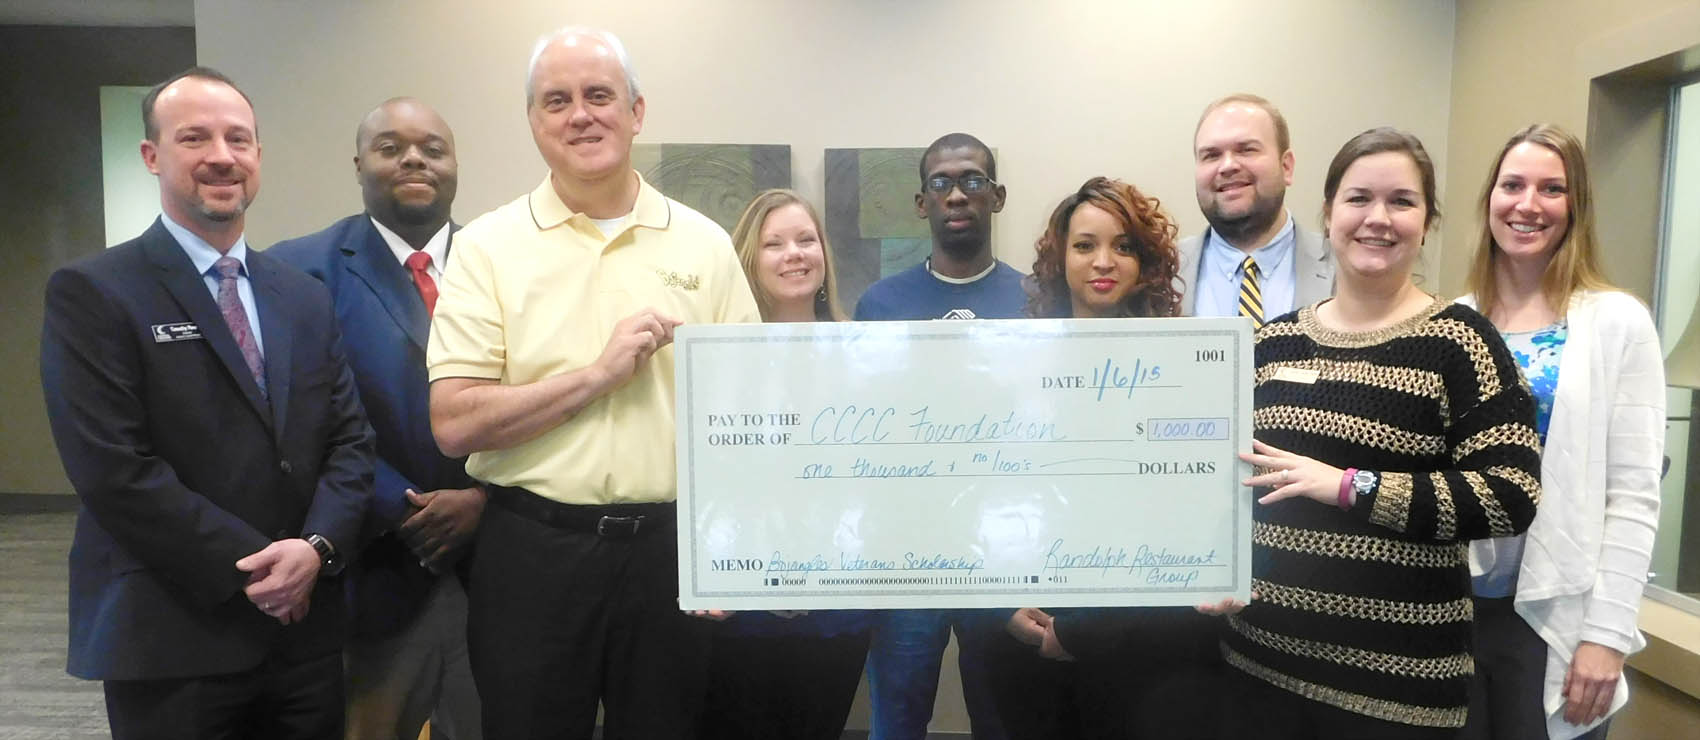 Click to enlarge,  Rob Maxey, District Manager for Bojangles' - Randolph Restaurant Group, and Emily Hare, CCCC Foundation Executive Director, hold the donation check to go toward the Veterans Upward Bound program. Pictured behind Maxey and Hare are, left to right: Timothy K. Peedin, CCCC's Director of Veterans Upward Bound-TRiO Programs; Wilson Lester, CCCC's Outreach Coordinator for the Veterans Upward Bound program; scholarship recipients Emily Russell (Air Force), Deshawn Townes (Army), and Jaala McGee (Army); Dr. Brian Merritt, CCCC's Vice President of Student Learning; and Ashley Tittemore, CCCC's Executive Director of College Access Programs. For more information on the CCCC Veterans Upward Bound program, call 919-718-7463, email veteransub@cccc.edu, or visit the programs website www.cccc.edu/vub/.